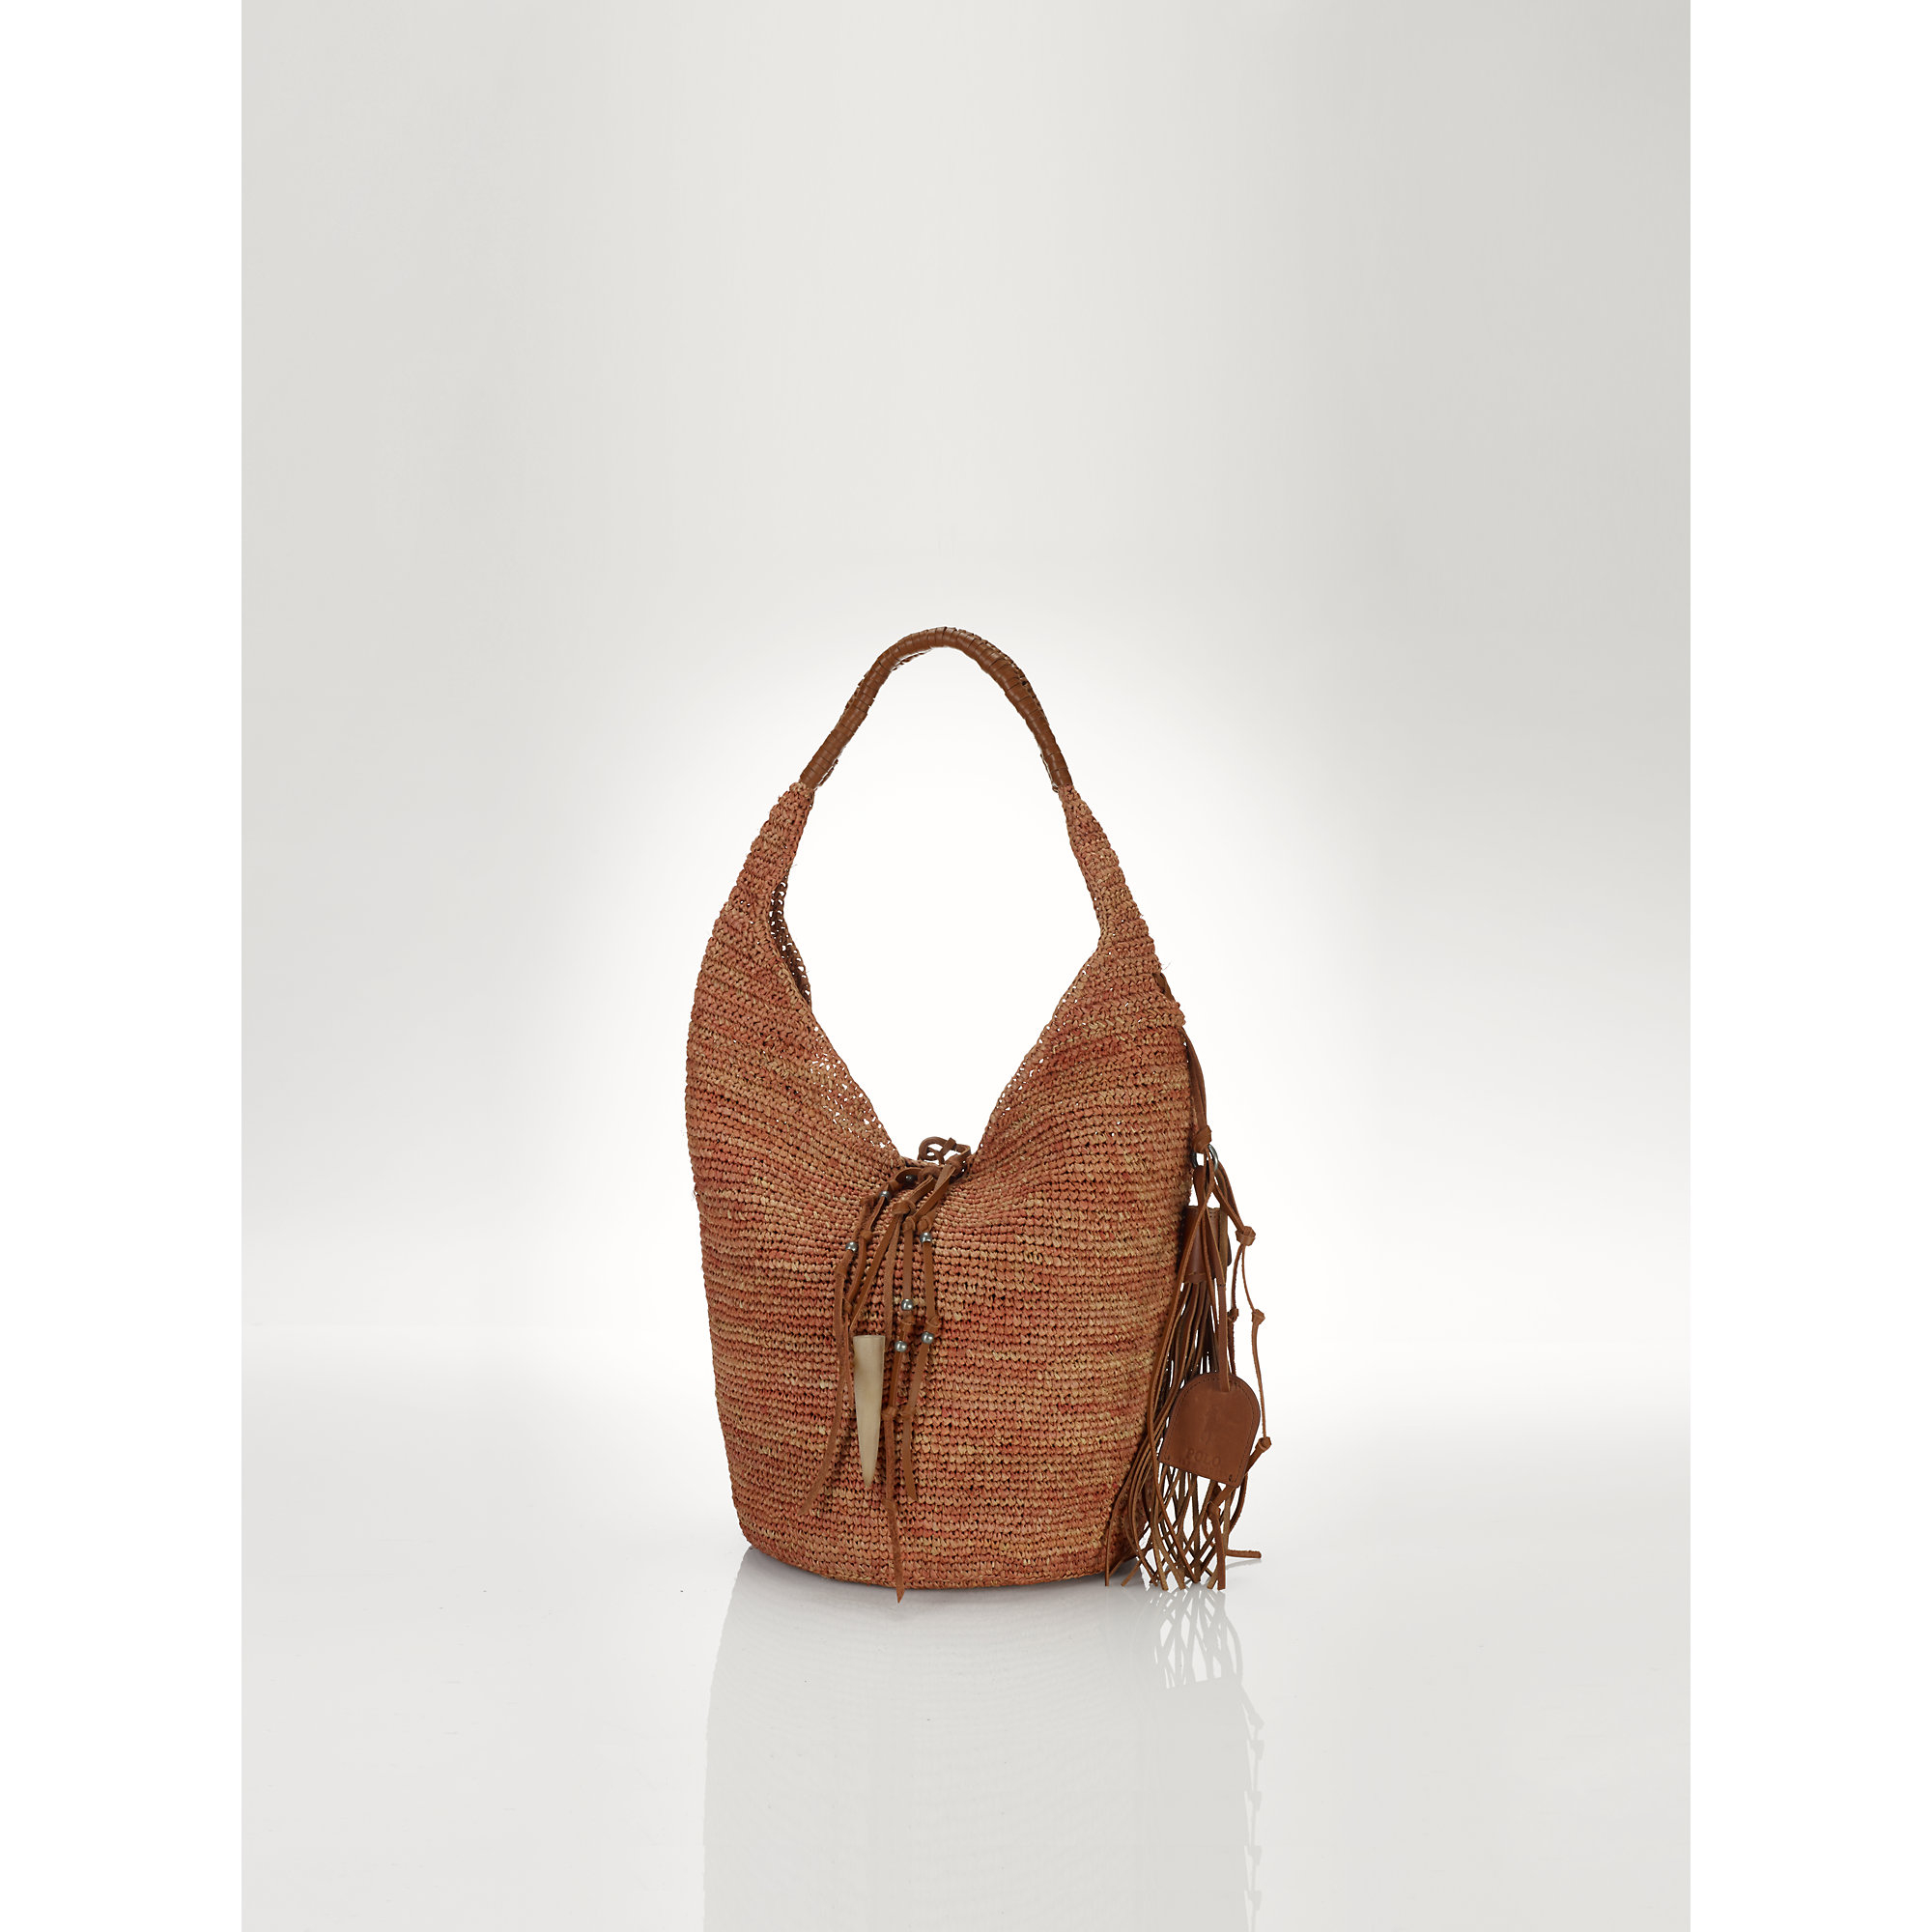 Lyst - Polo Ralph Lauren Straw Sling Bag in Brown 79bab15c04